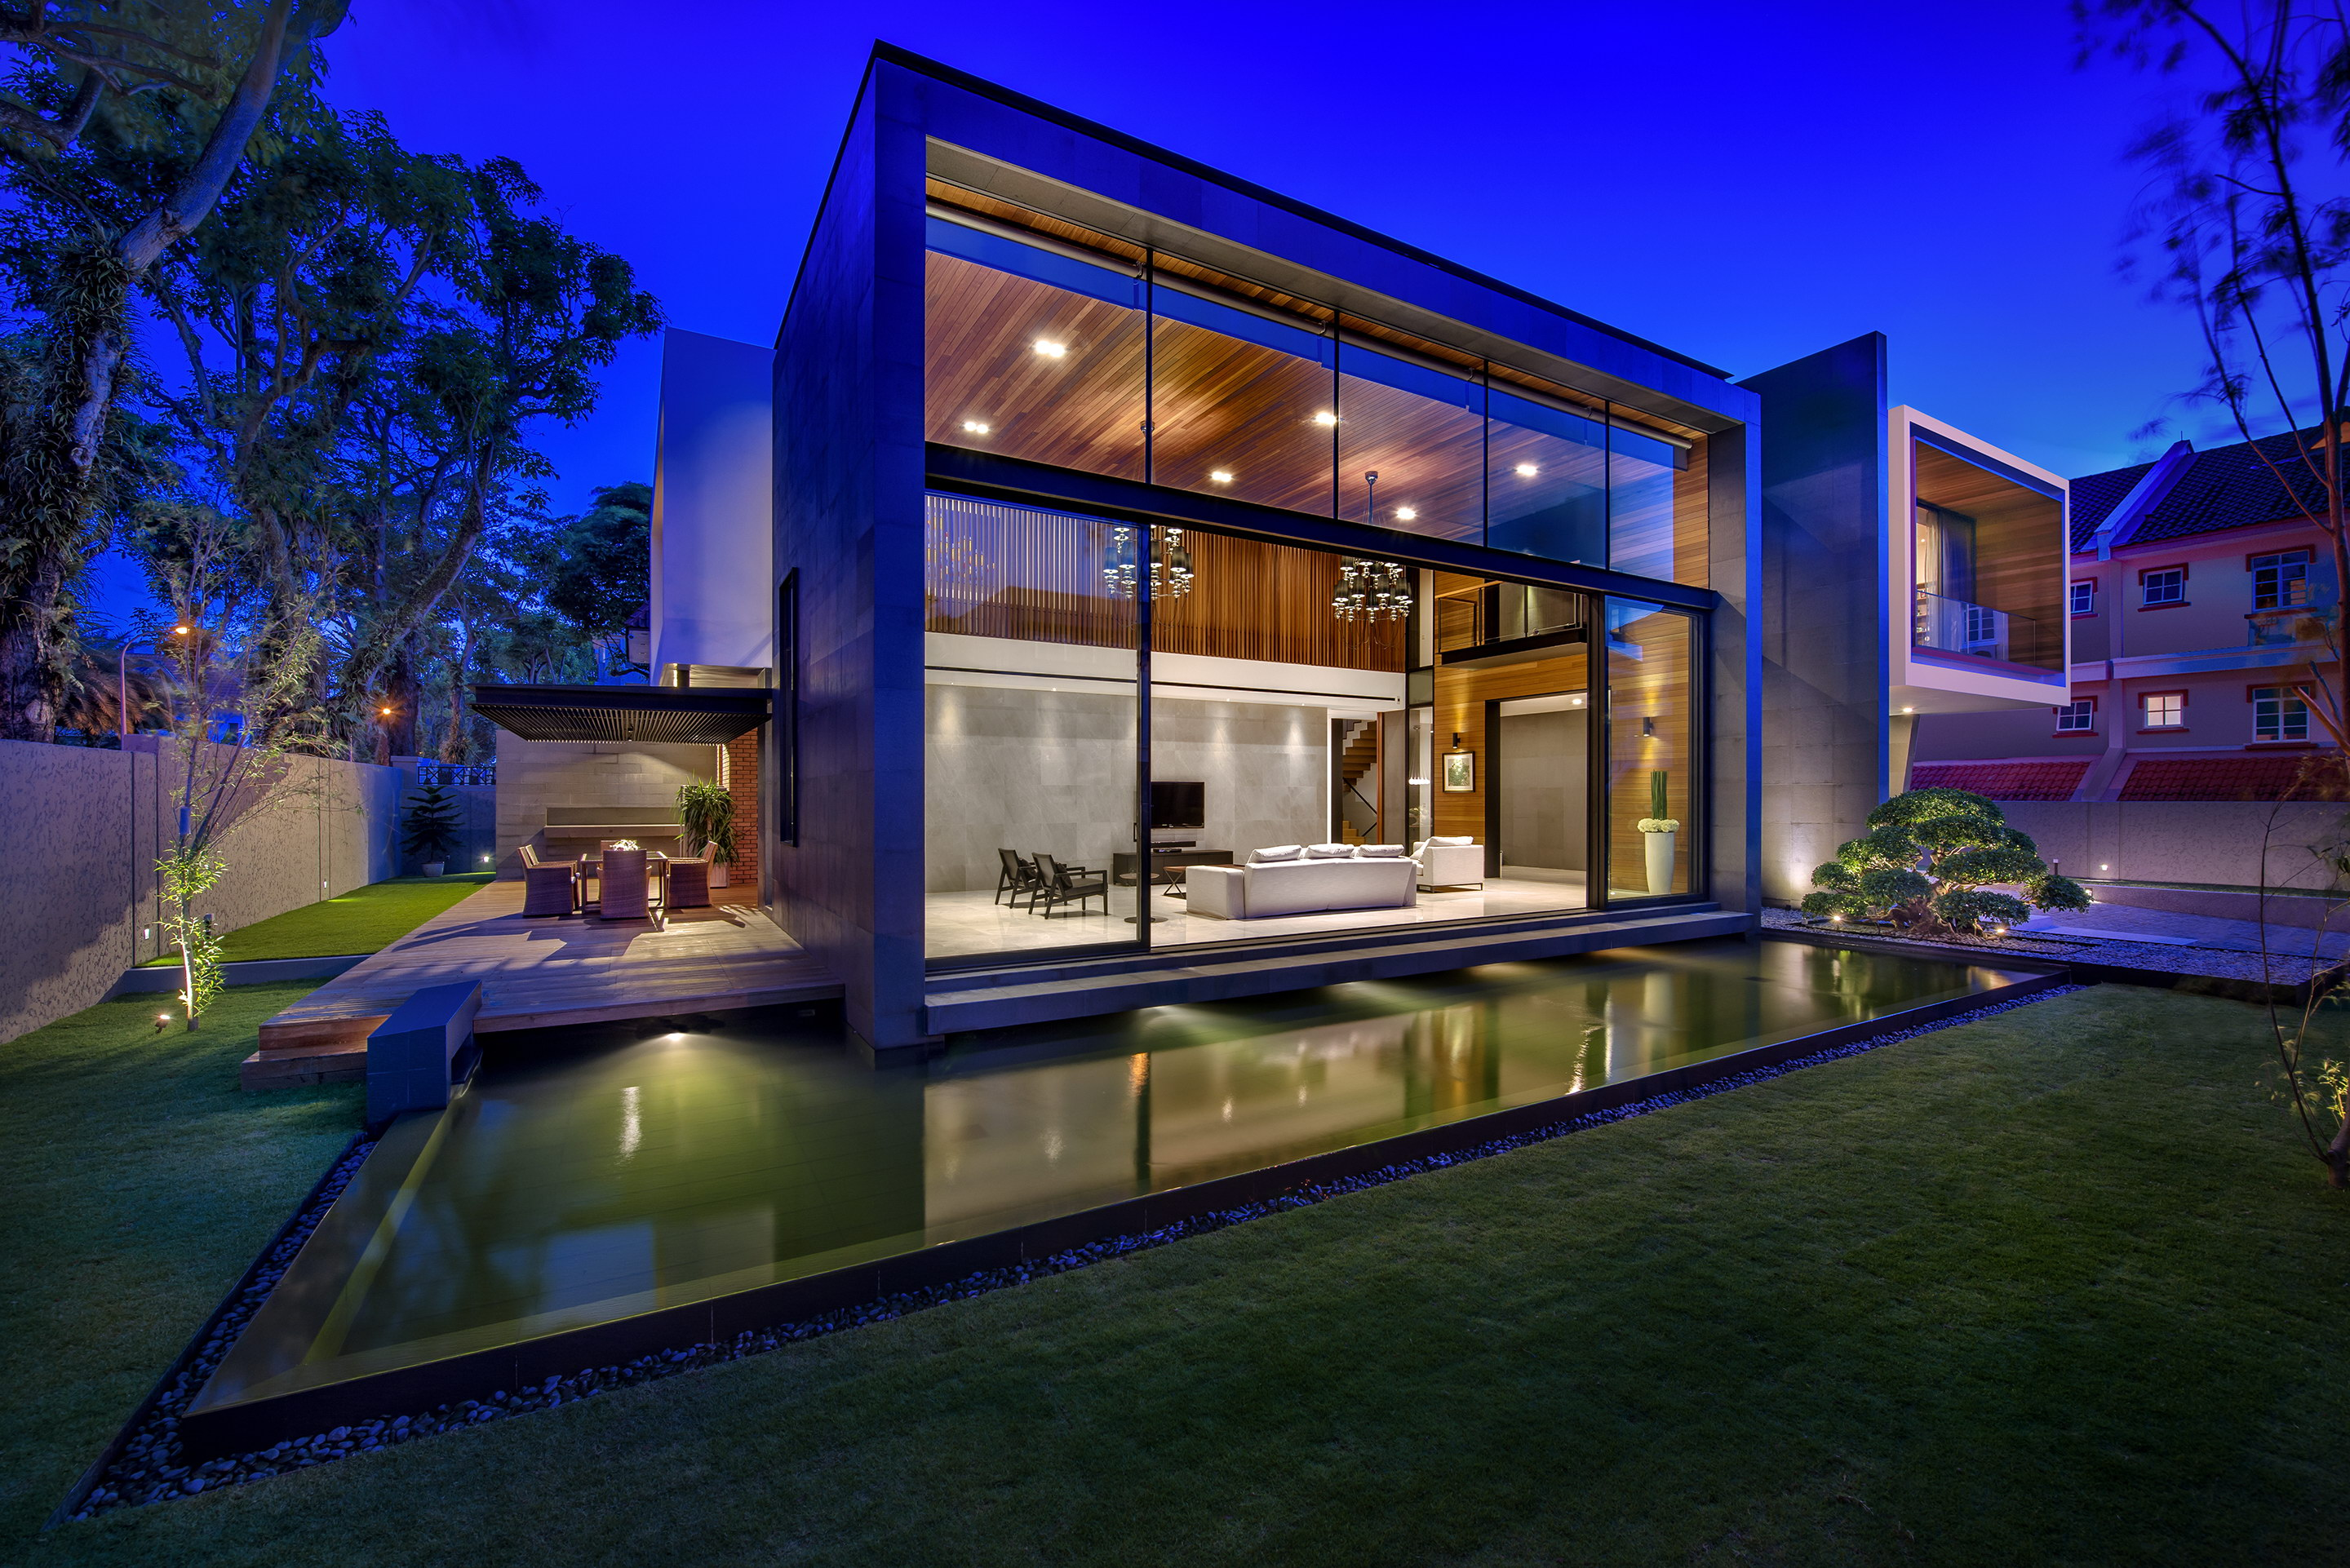 Mimosa Road | Mimosa House by Park + Associates